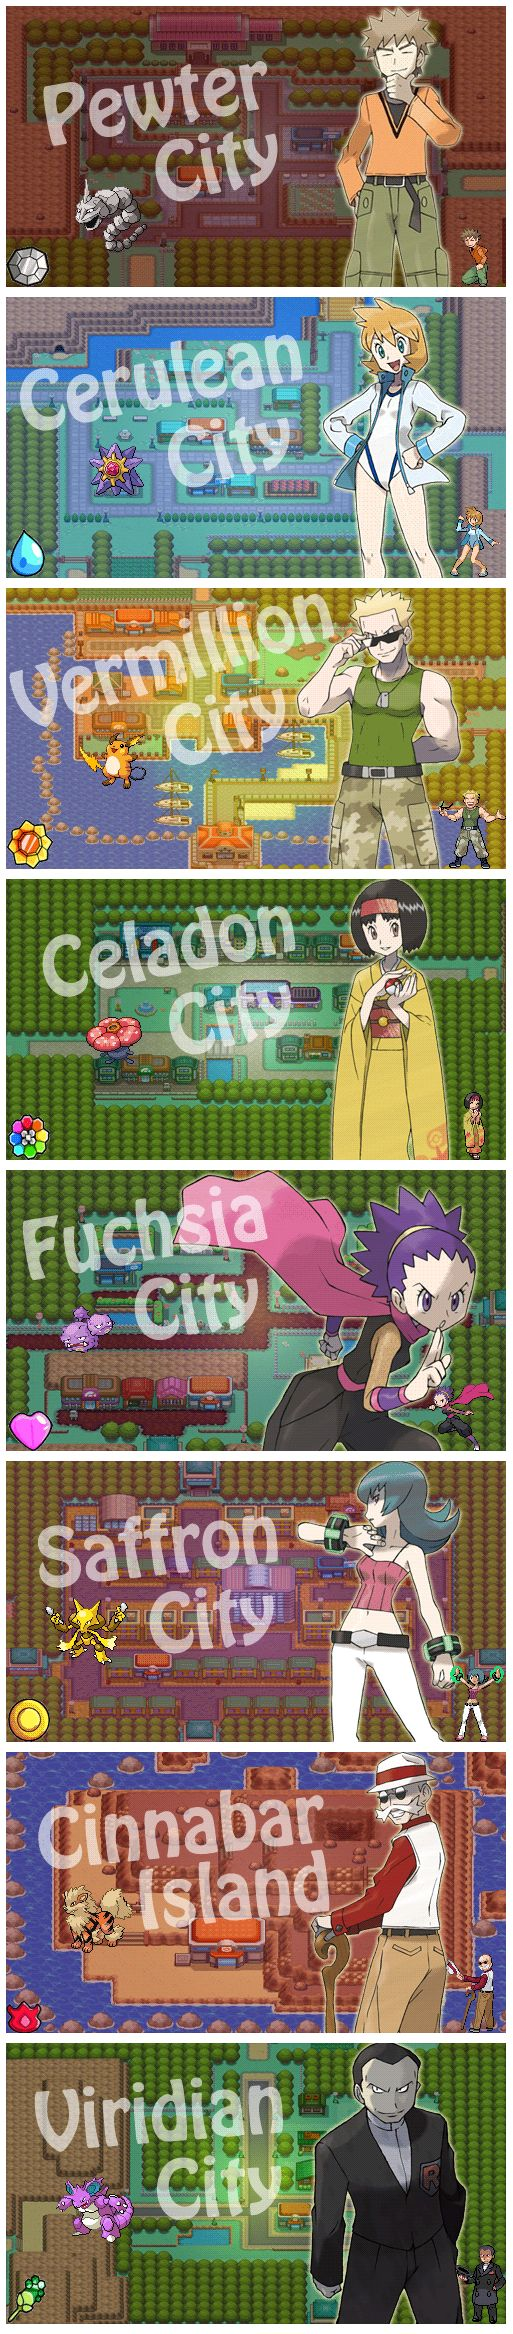 The Most Majestic Locations People Have Caught Pokémon Gym leaders, the badges and the cities in which they are located.